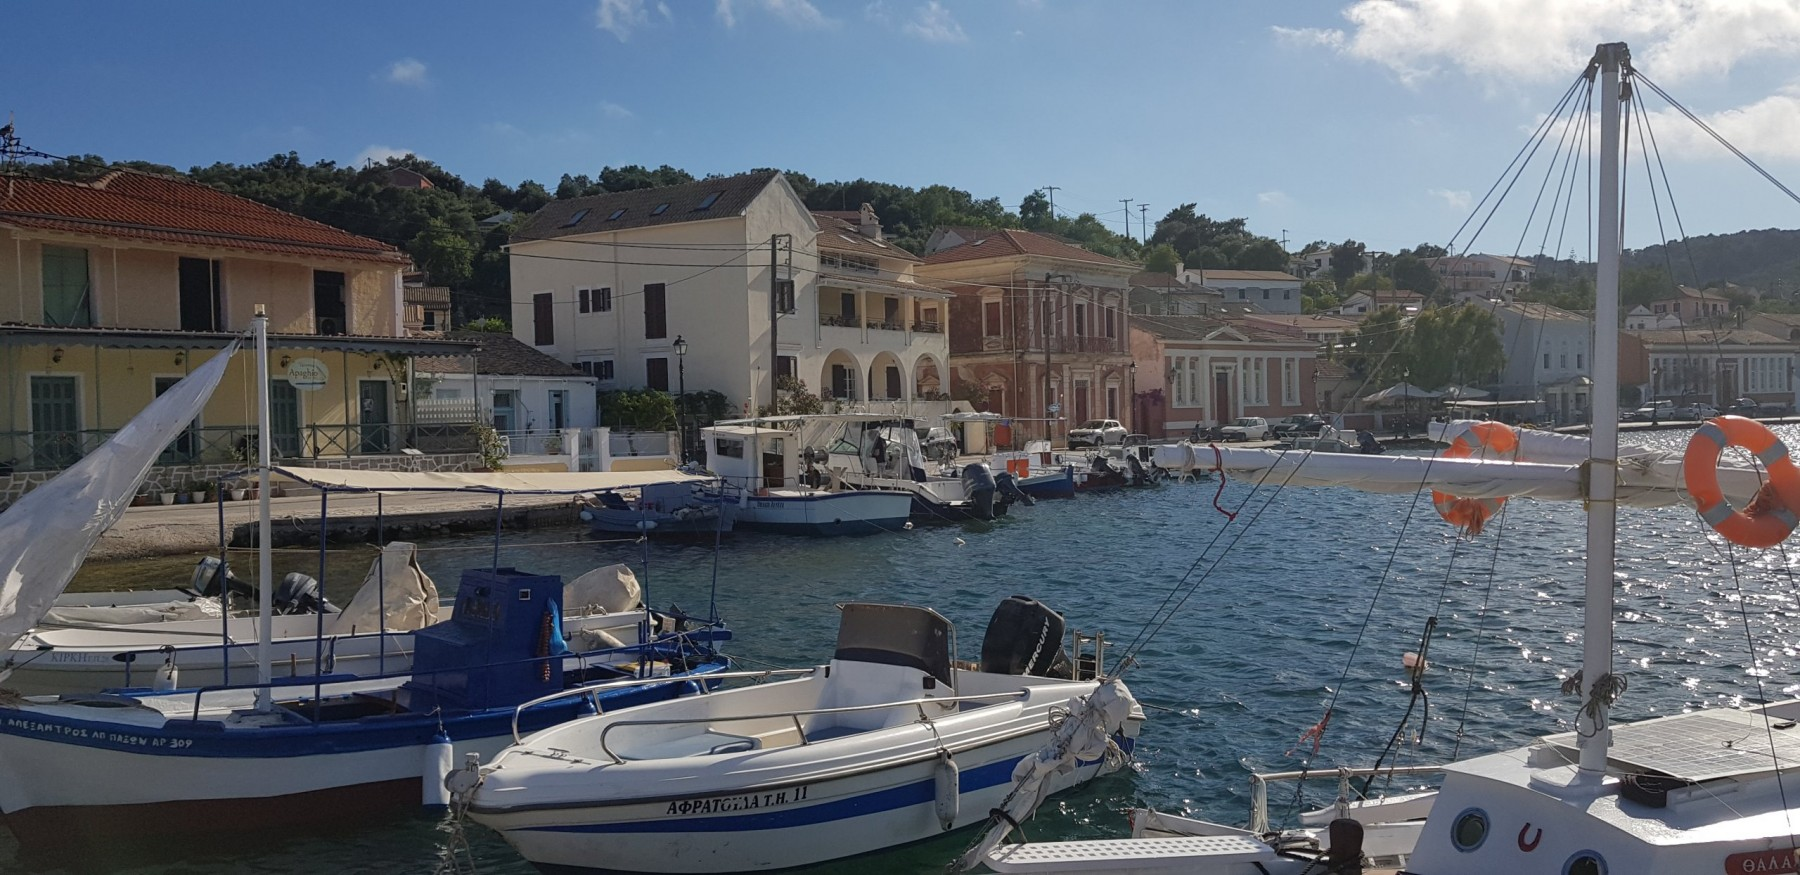 Gaios harbour and Town Quay